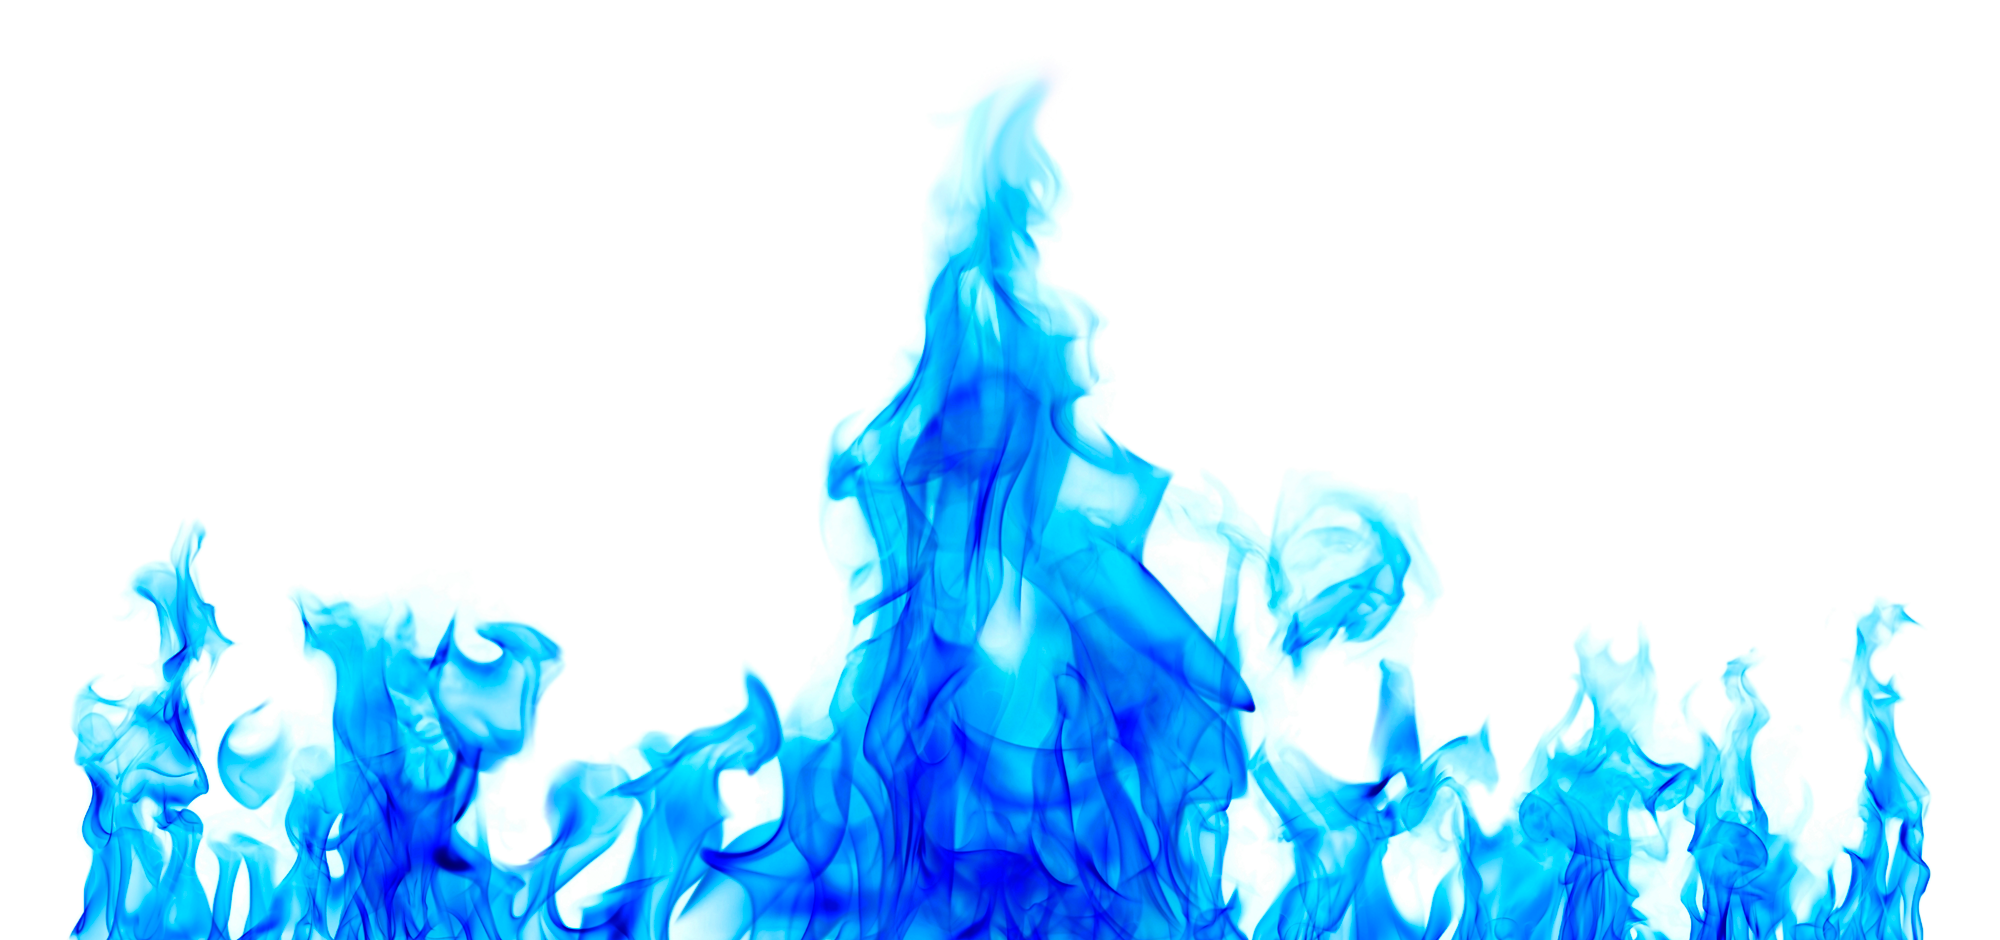 Blue flame png image. Flames clipart green fire